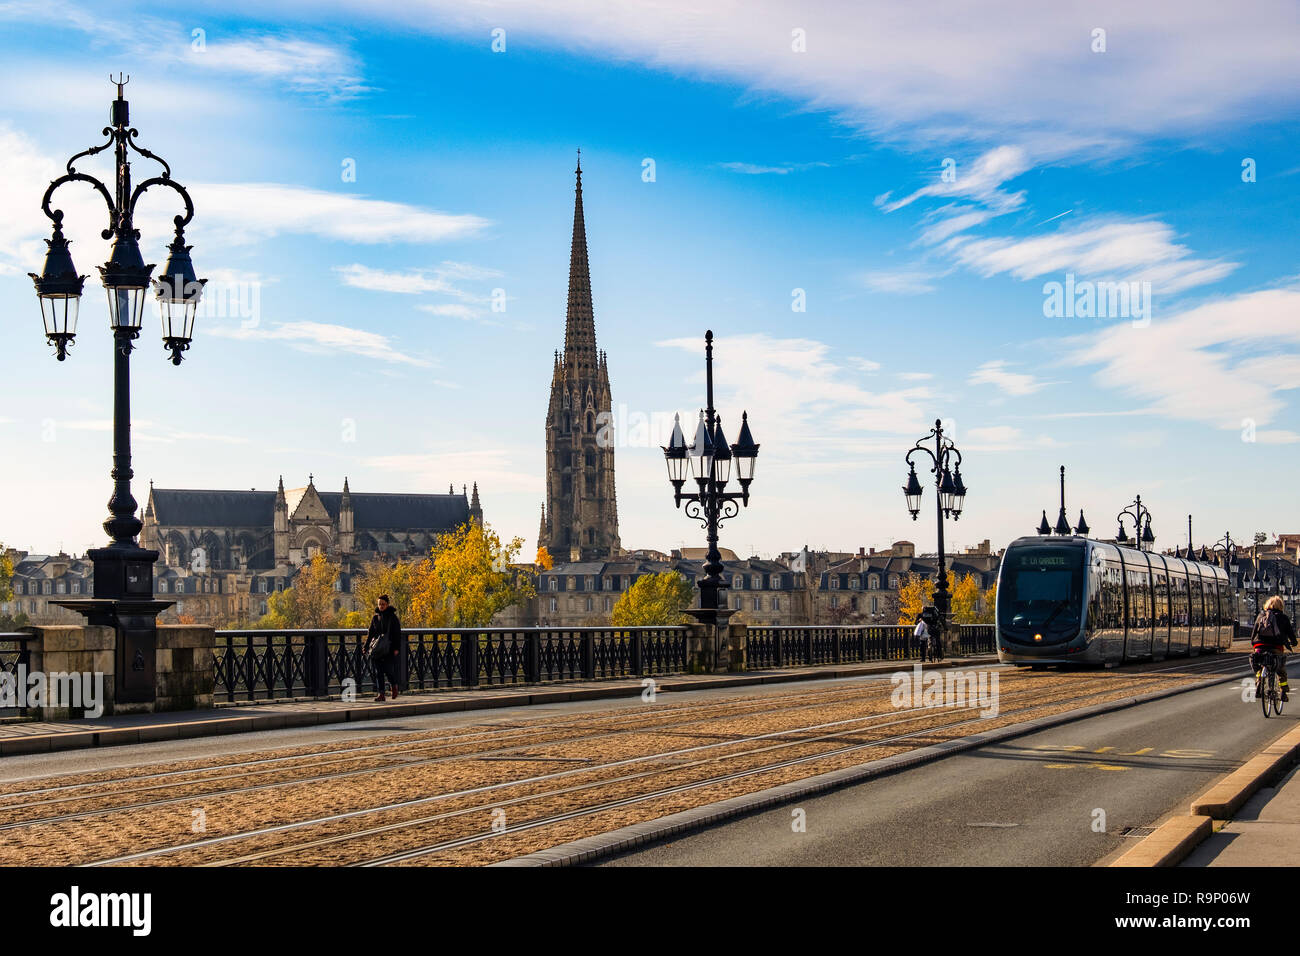 Tram line on Pont de Pierre. Stone Bridge over Garonne River. Bordeaux, Gironde. Aquitaine region. France Europe - Stock Image